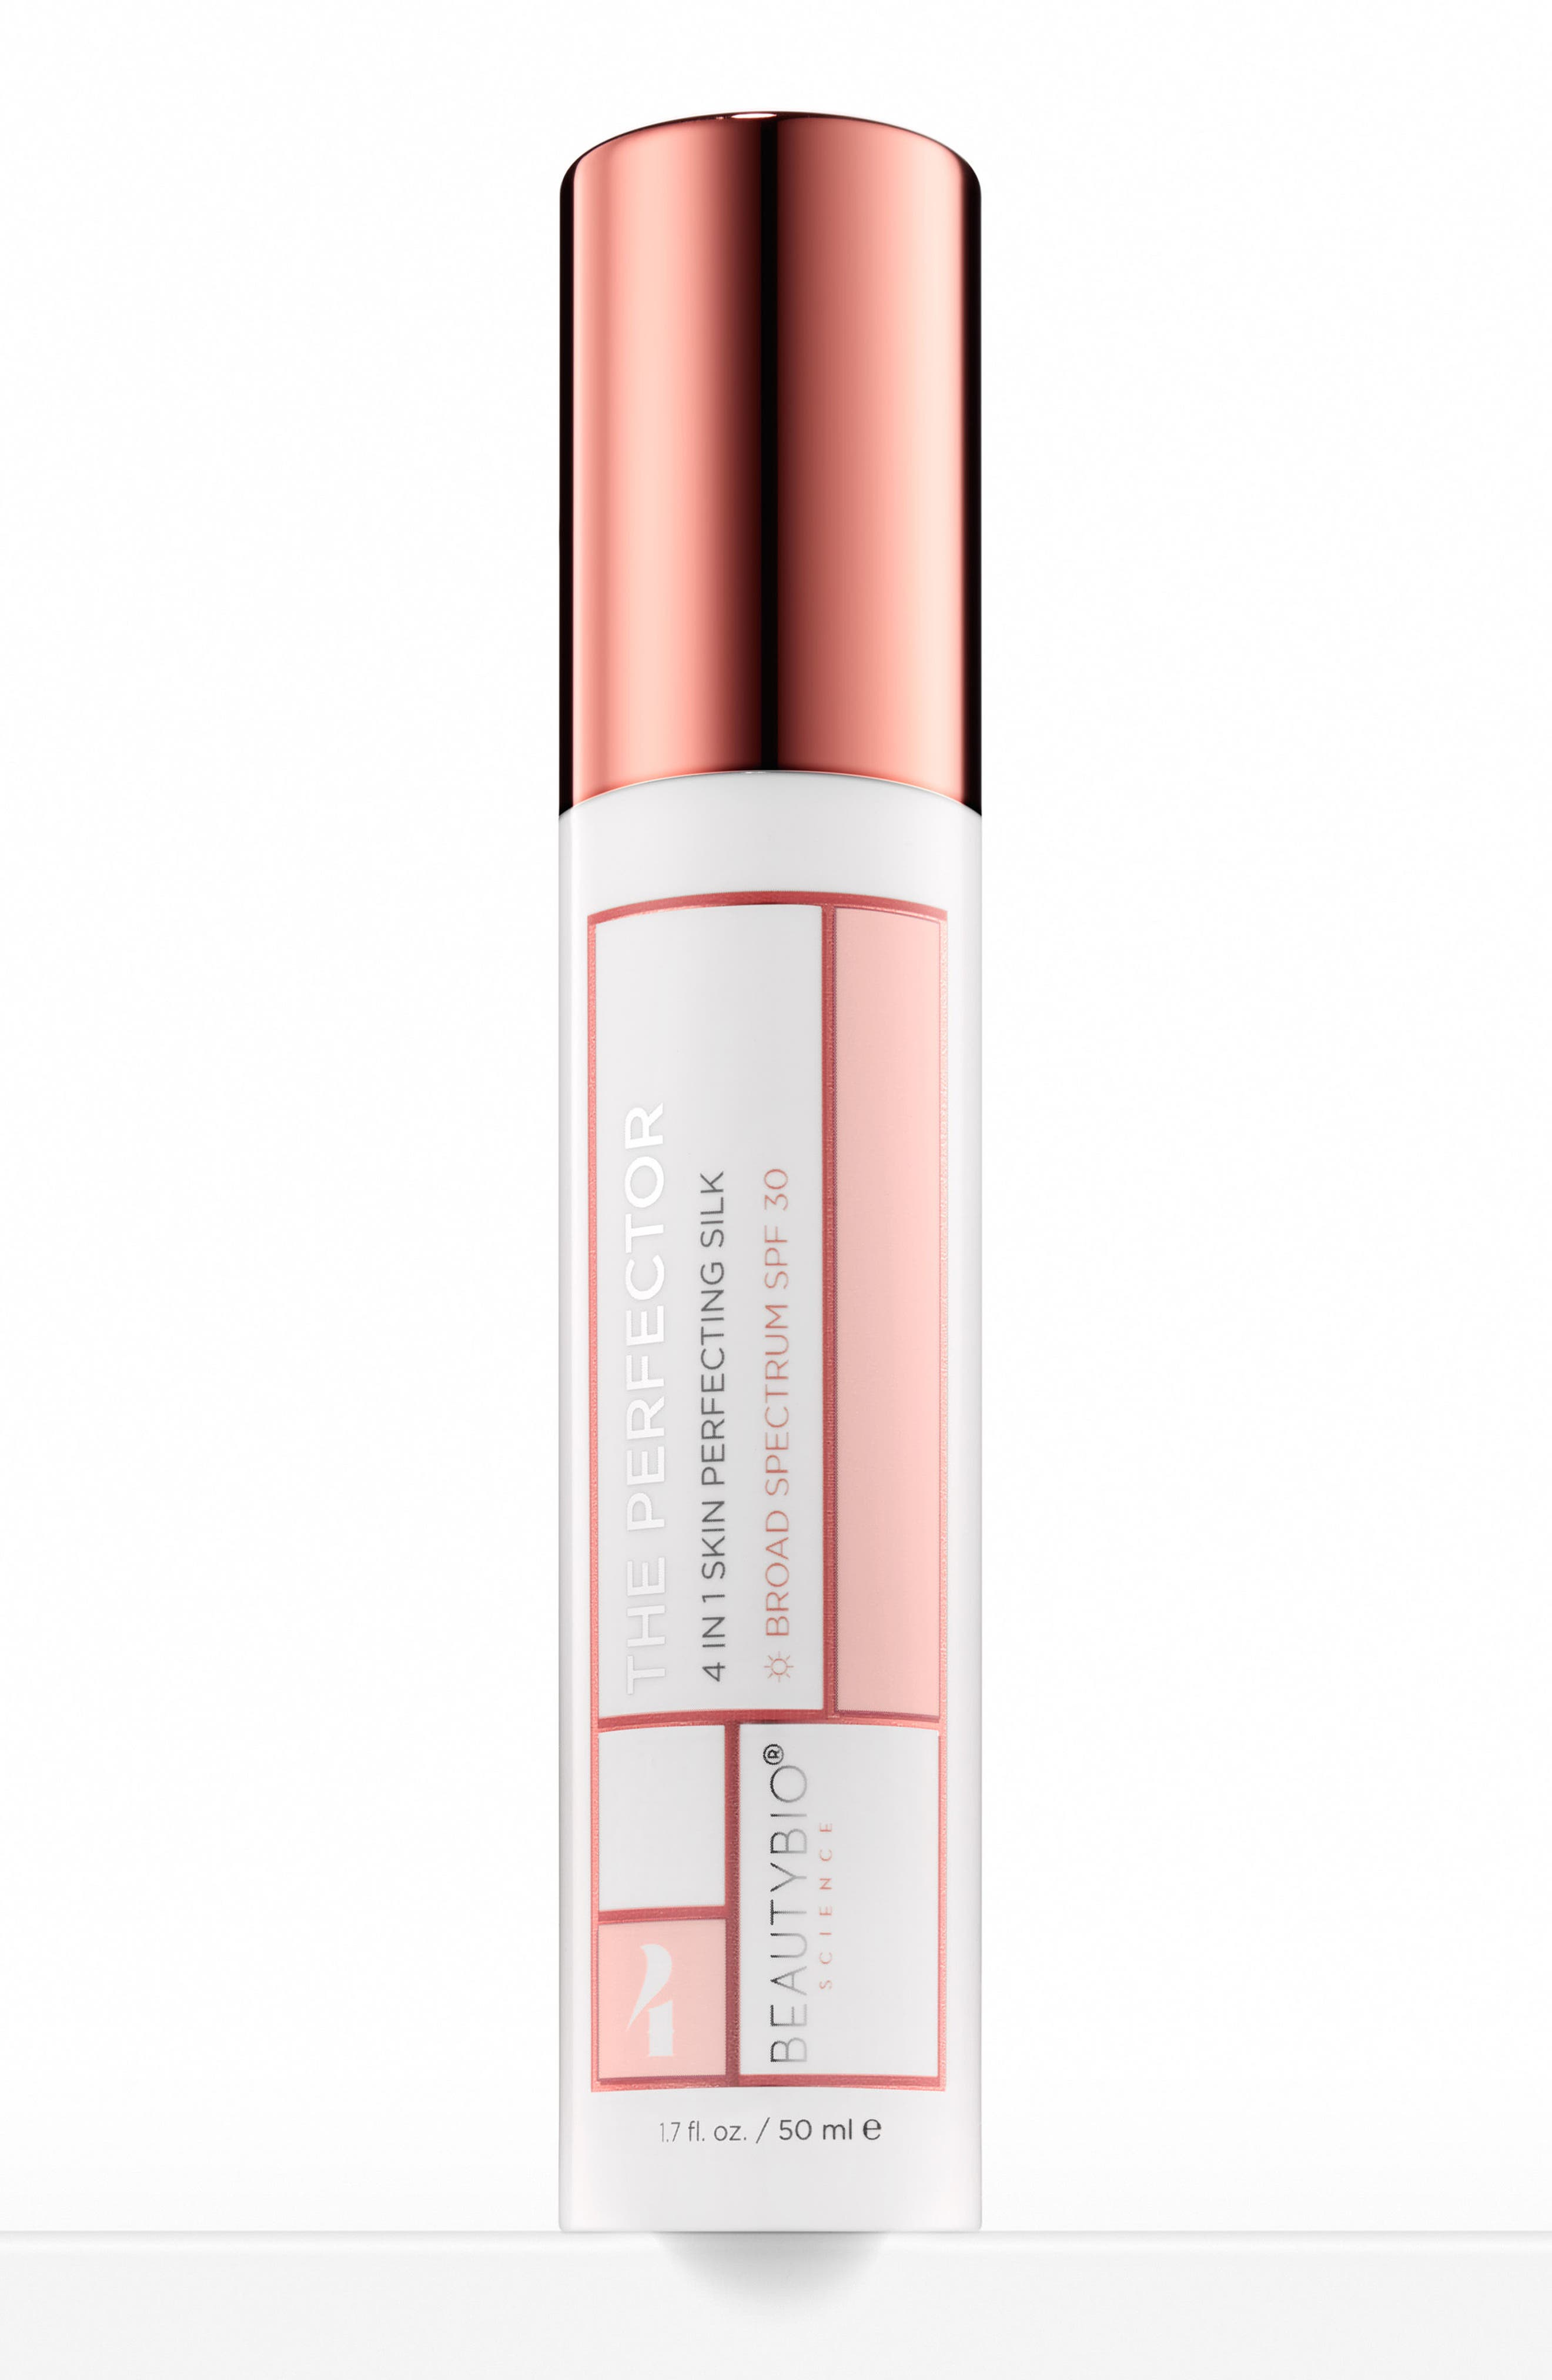 Main Image - Beauty Bioscience® The Perfector 4-in-1 Skin Perfecting Silk SPF 30